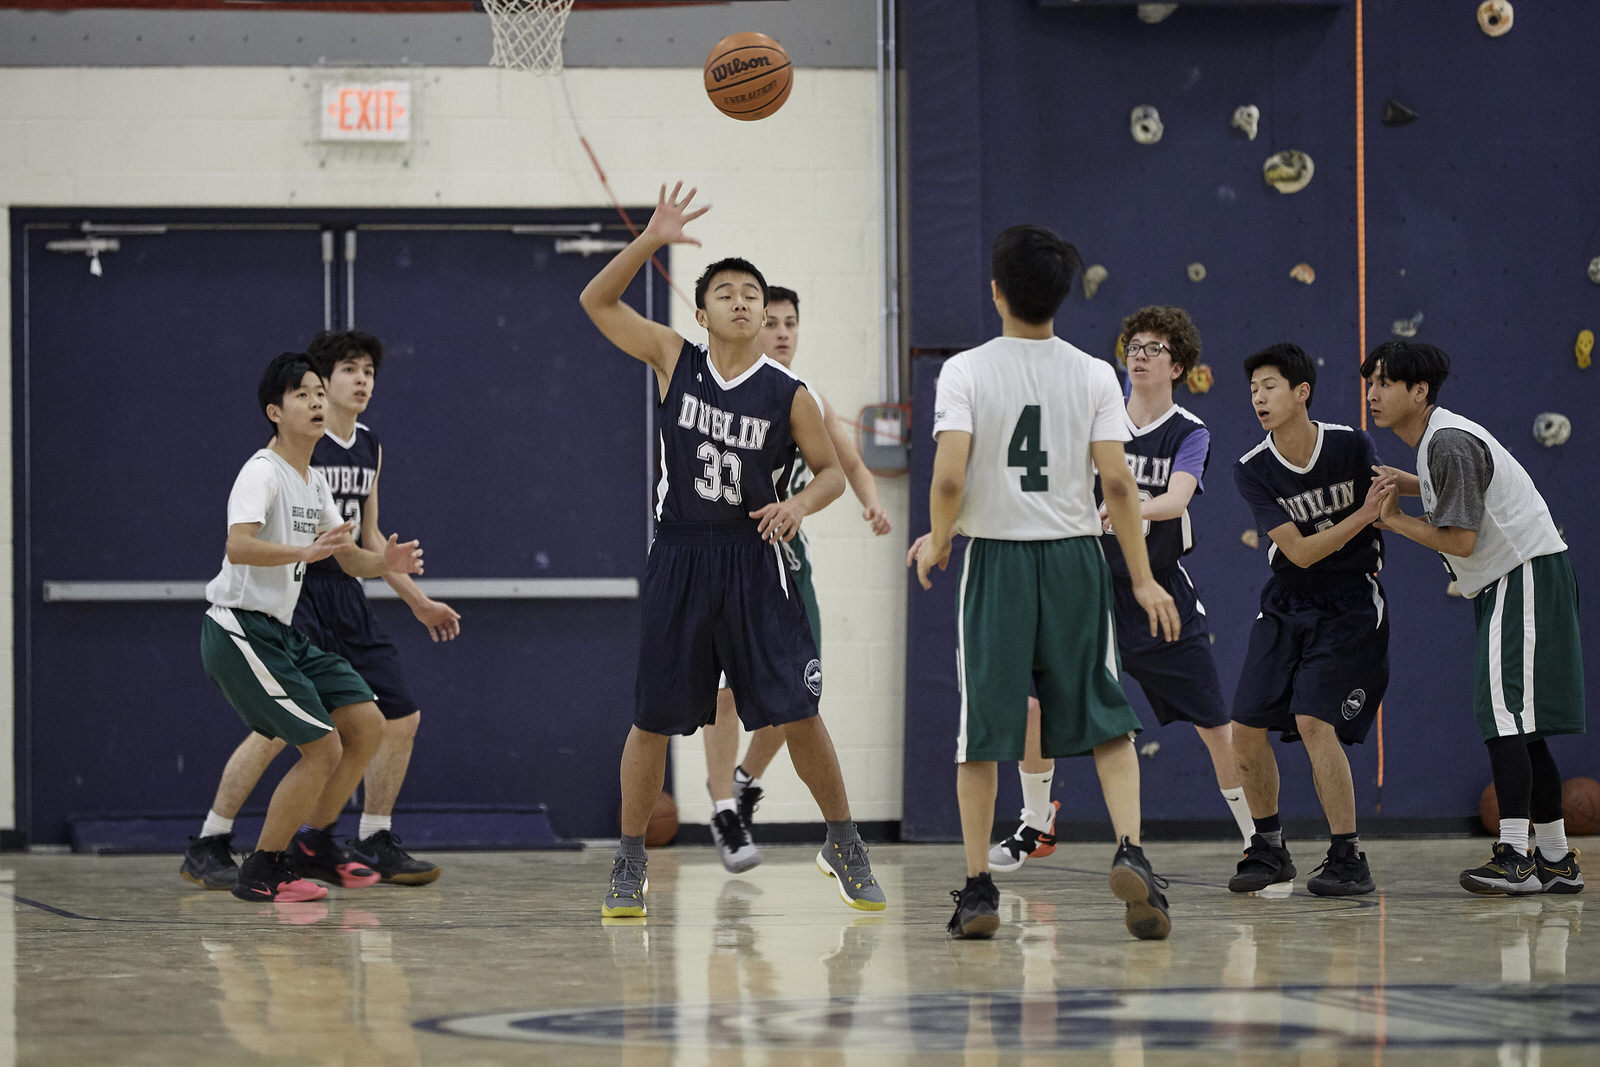 Dublin JV Boys Basketball vs High Mowing School - Jan 26 2019 - 0120.jpg